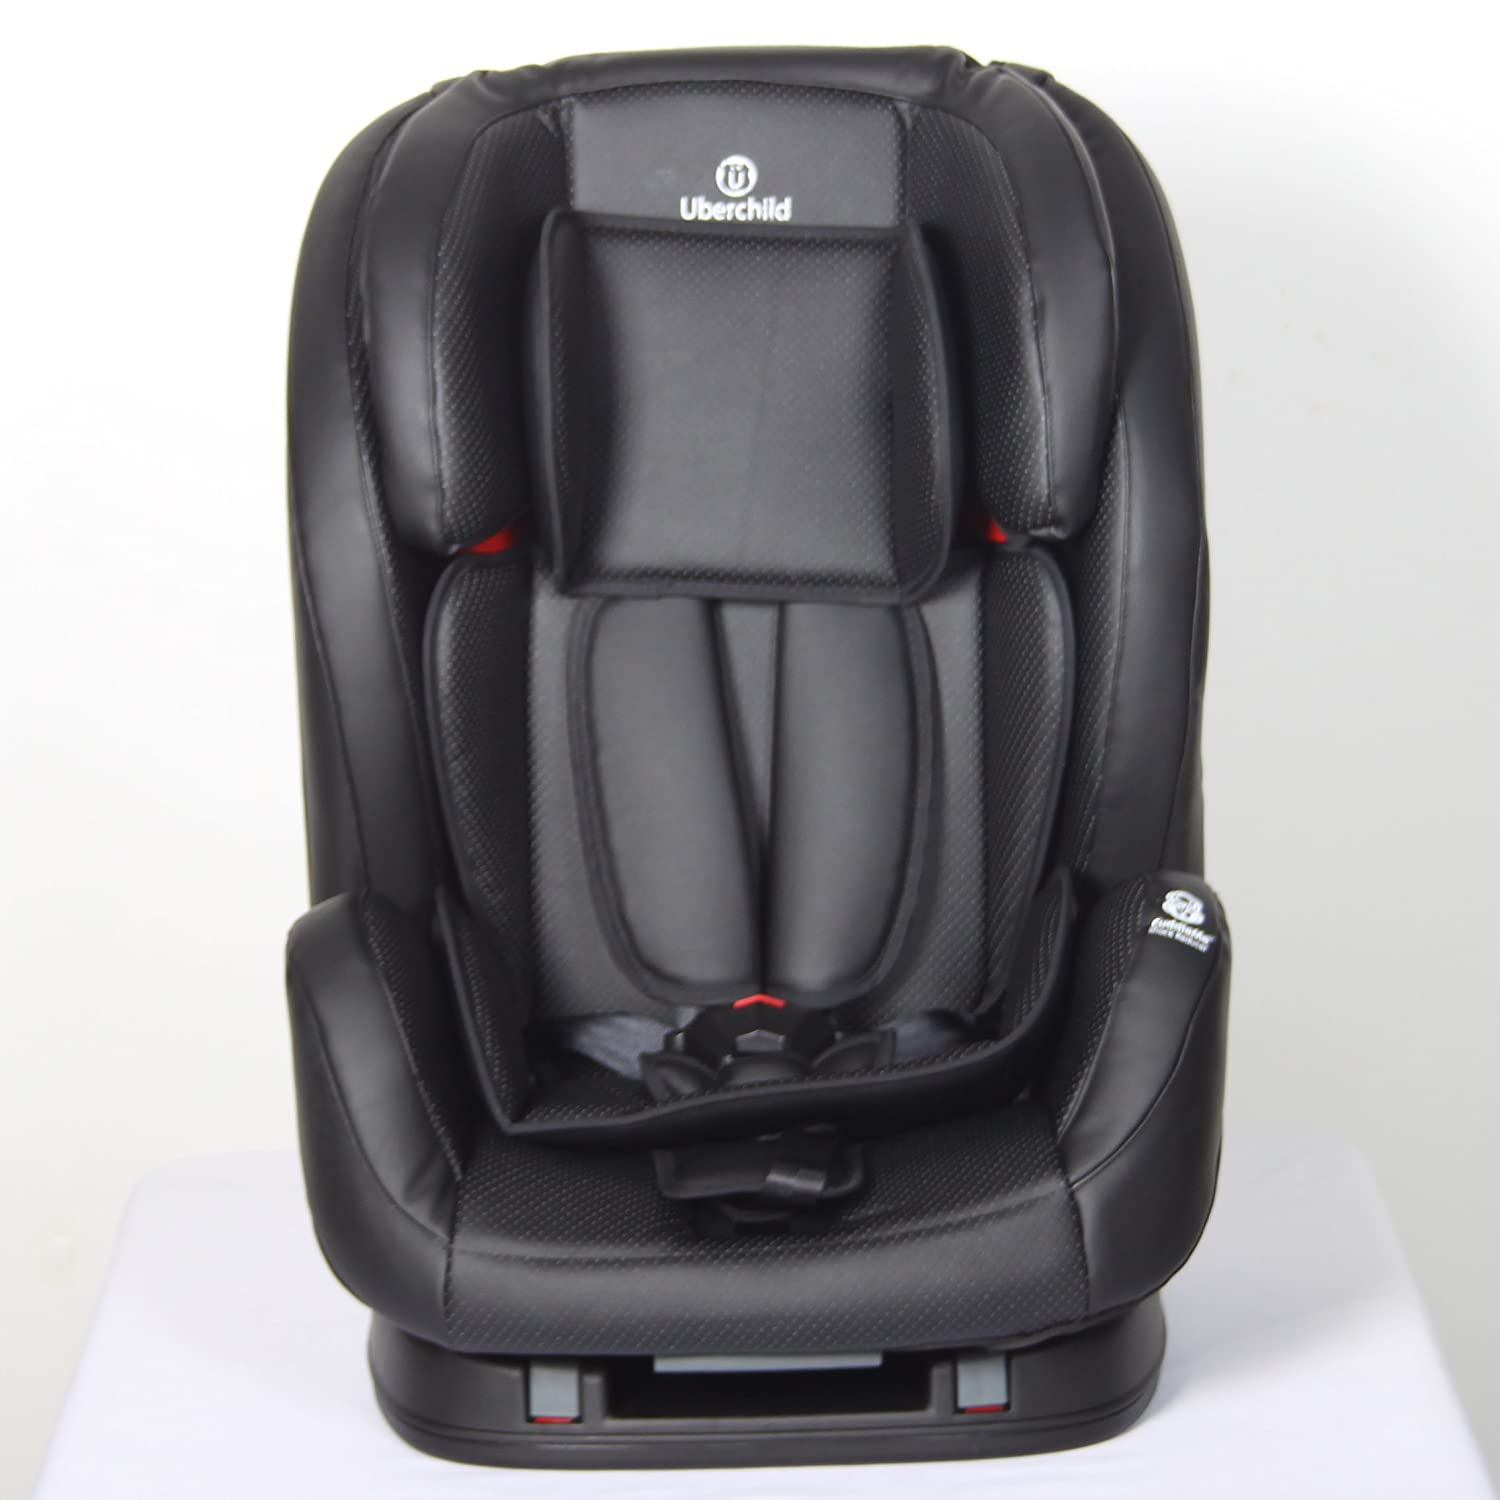 Uberchild Group 123 Isofix Car Seat Black